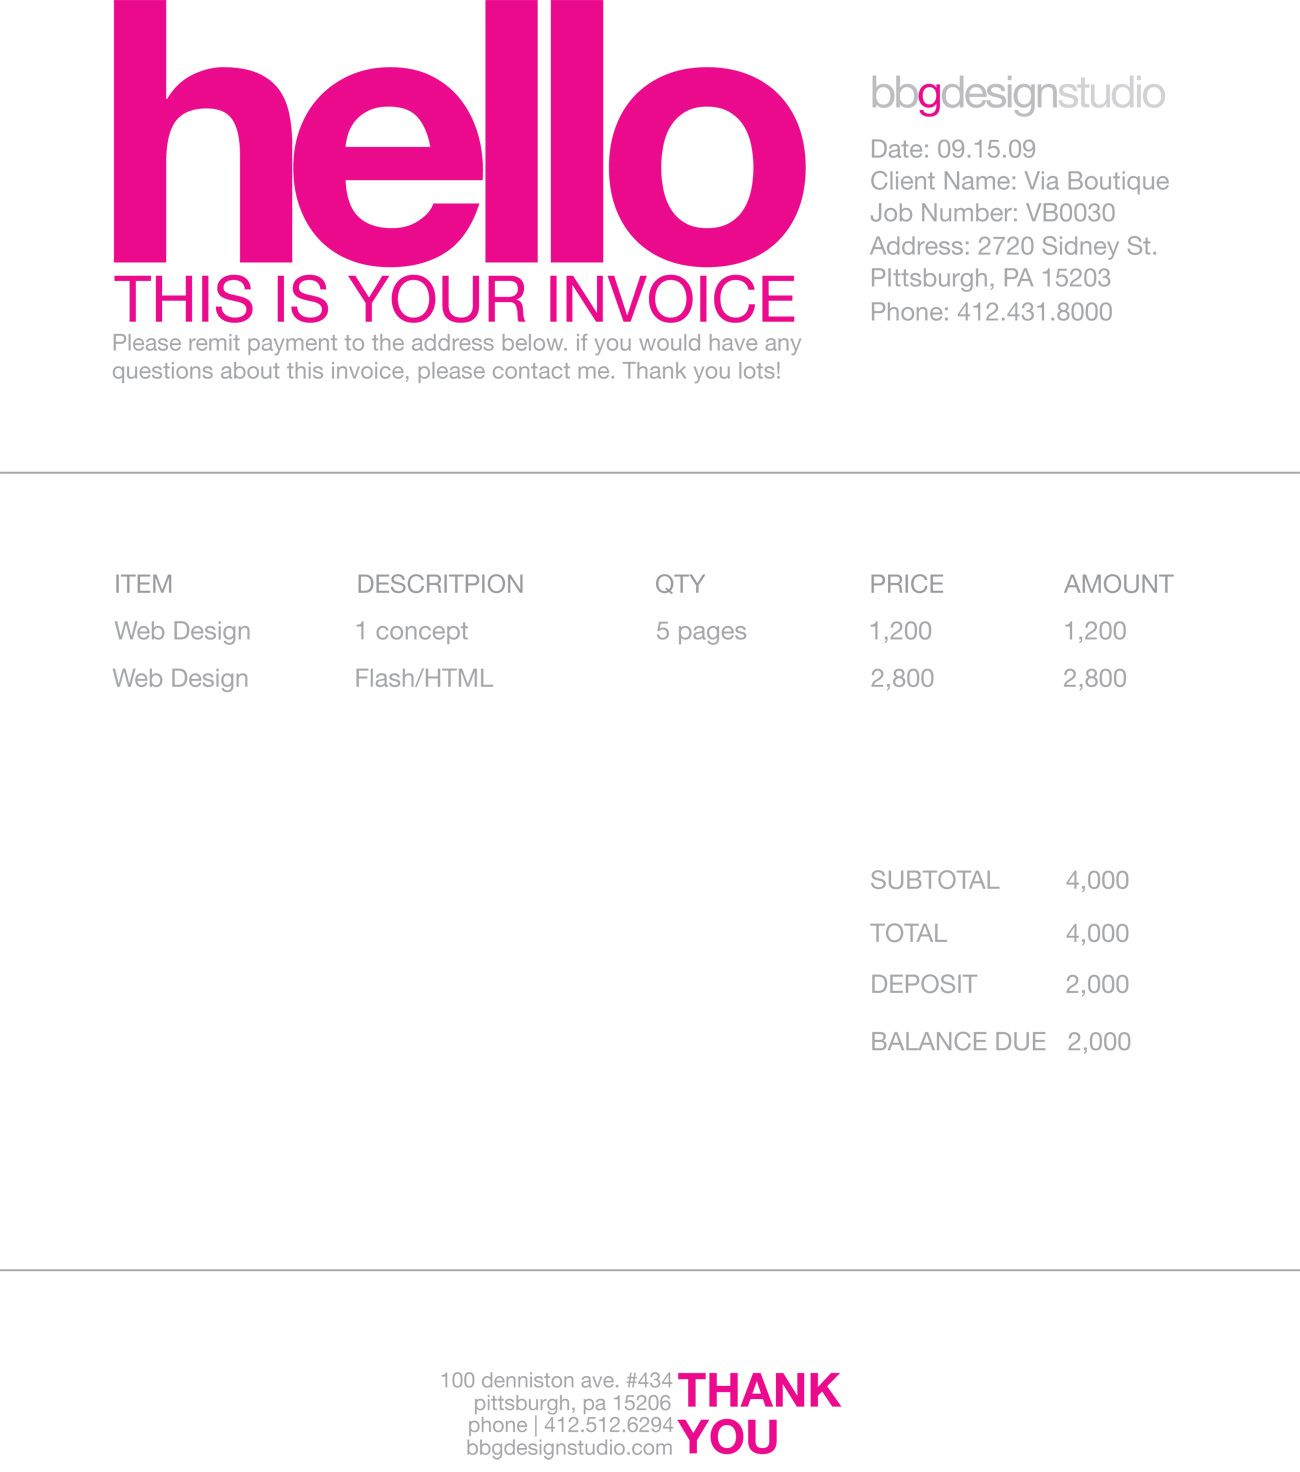 Hius  Picturesque  Images About Invoice Design On Pinterest With Fascinating Receiptive Besides Paypal Here Print Receipt Furthermore Abortion Receipt Form With Beauteous Contractor Receipt Also Receipt Design Software In Addition Acknowledge Receipt Of This Email And Stamp Duty Receipt As Well As What Is Return Receipt Mail Additionally Wilkinsons Returns Policy No Receipt From Pinterestcom With Hius  Fascinating  Images About Invoice Design On Pinterest With Beauteous Receiptive Besides Paypal Here Print Receipt Furthermore Abortion Receipt Form And Picturesque Contractor Receipt Also Receipt Design Software In Addition Acknowledge Receipt Of This Email From Pinterestcom